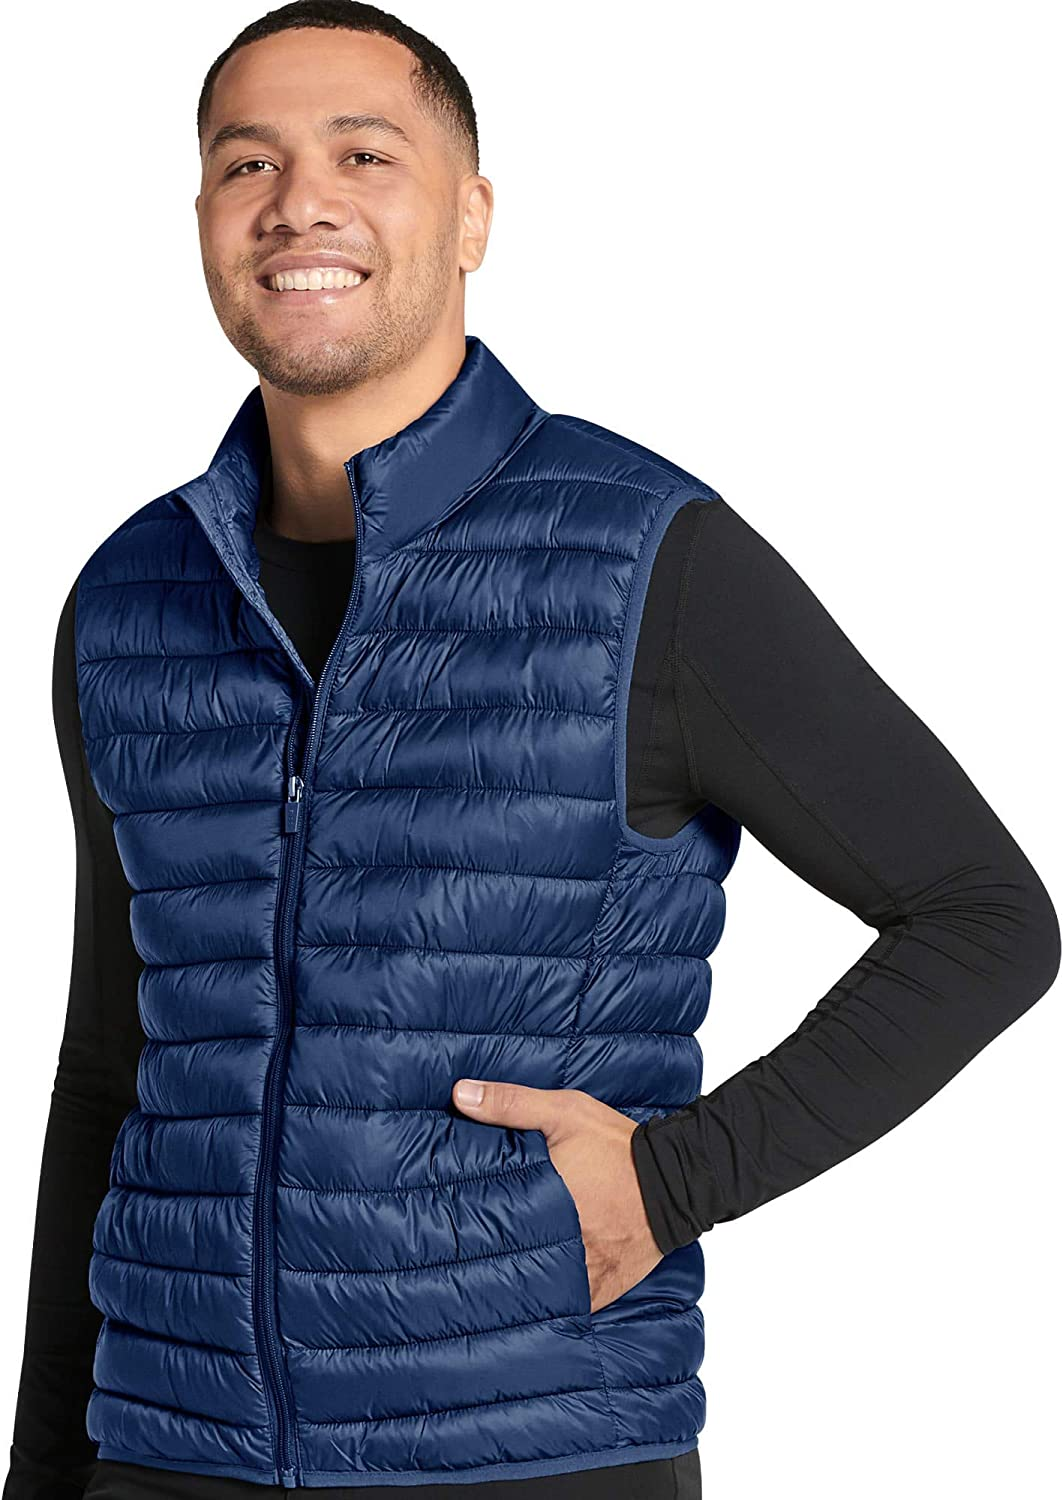 Jockey Lowest price challenge Men's Sportswear Quilted Tampa Mall Vest Puffer